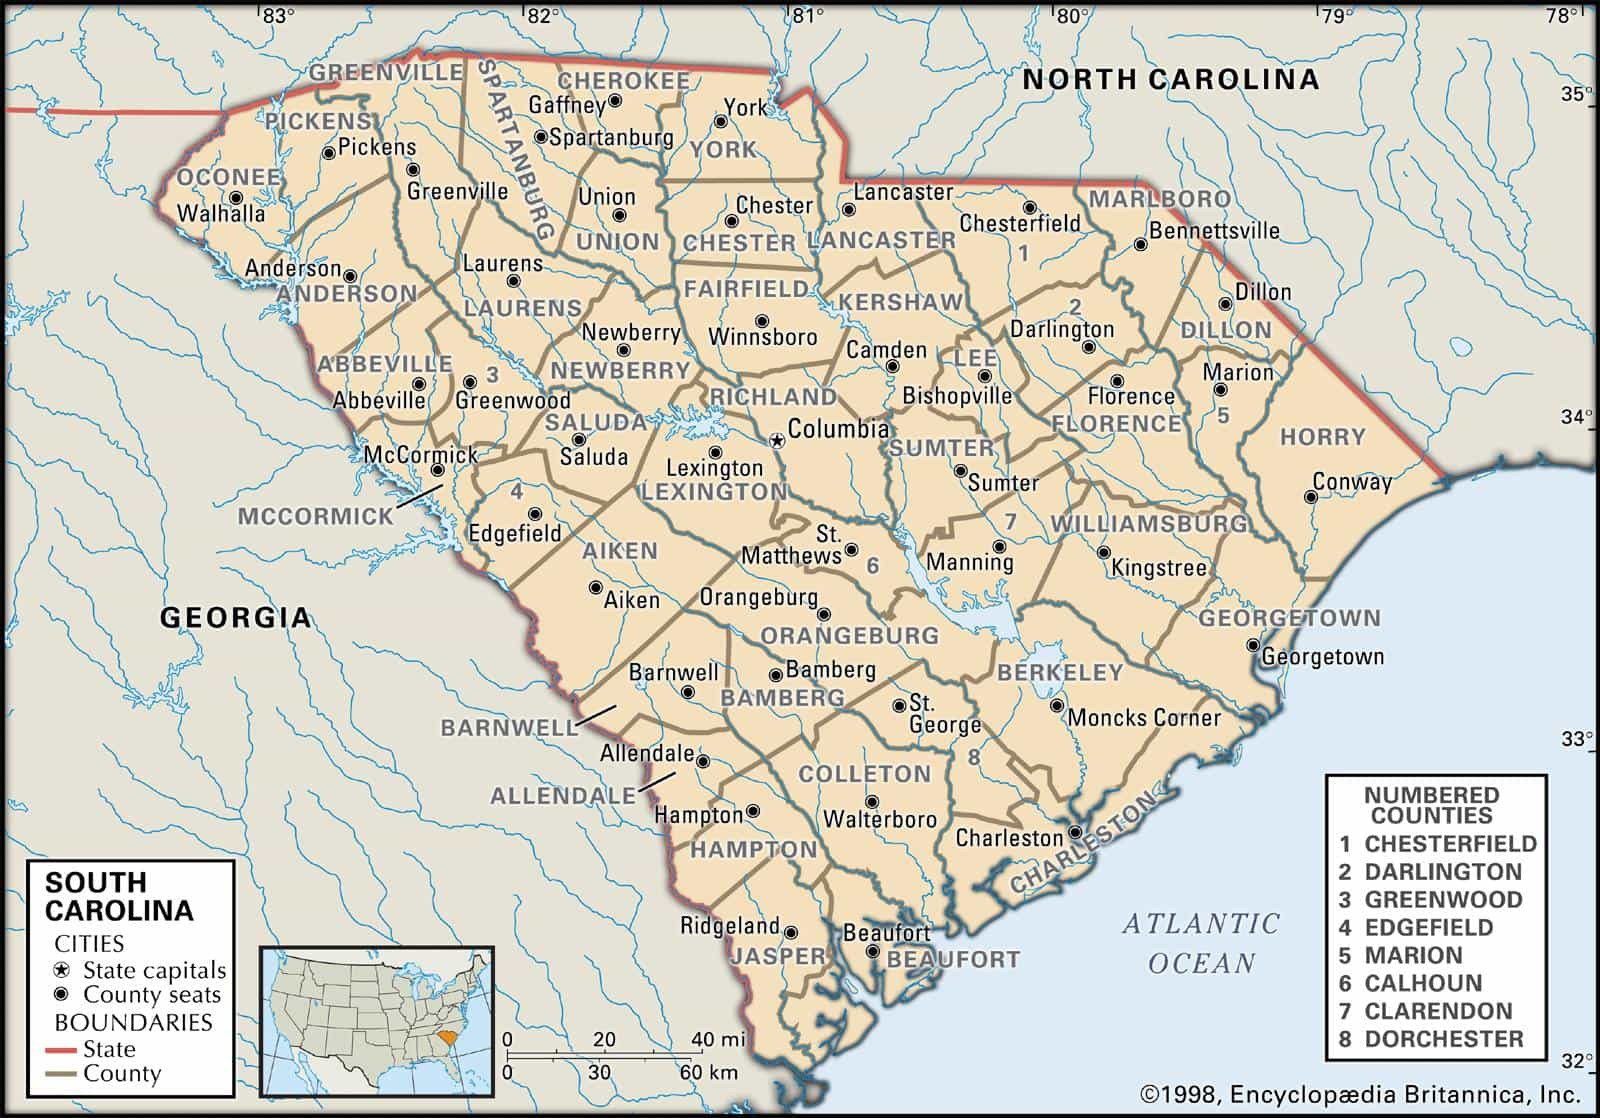 Historical Facts of South Carolina Counties